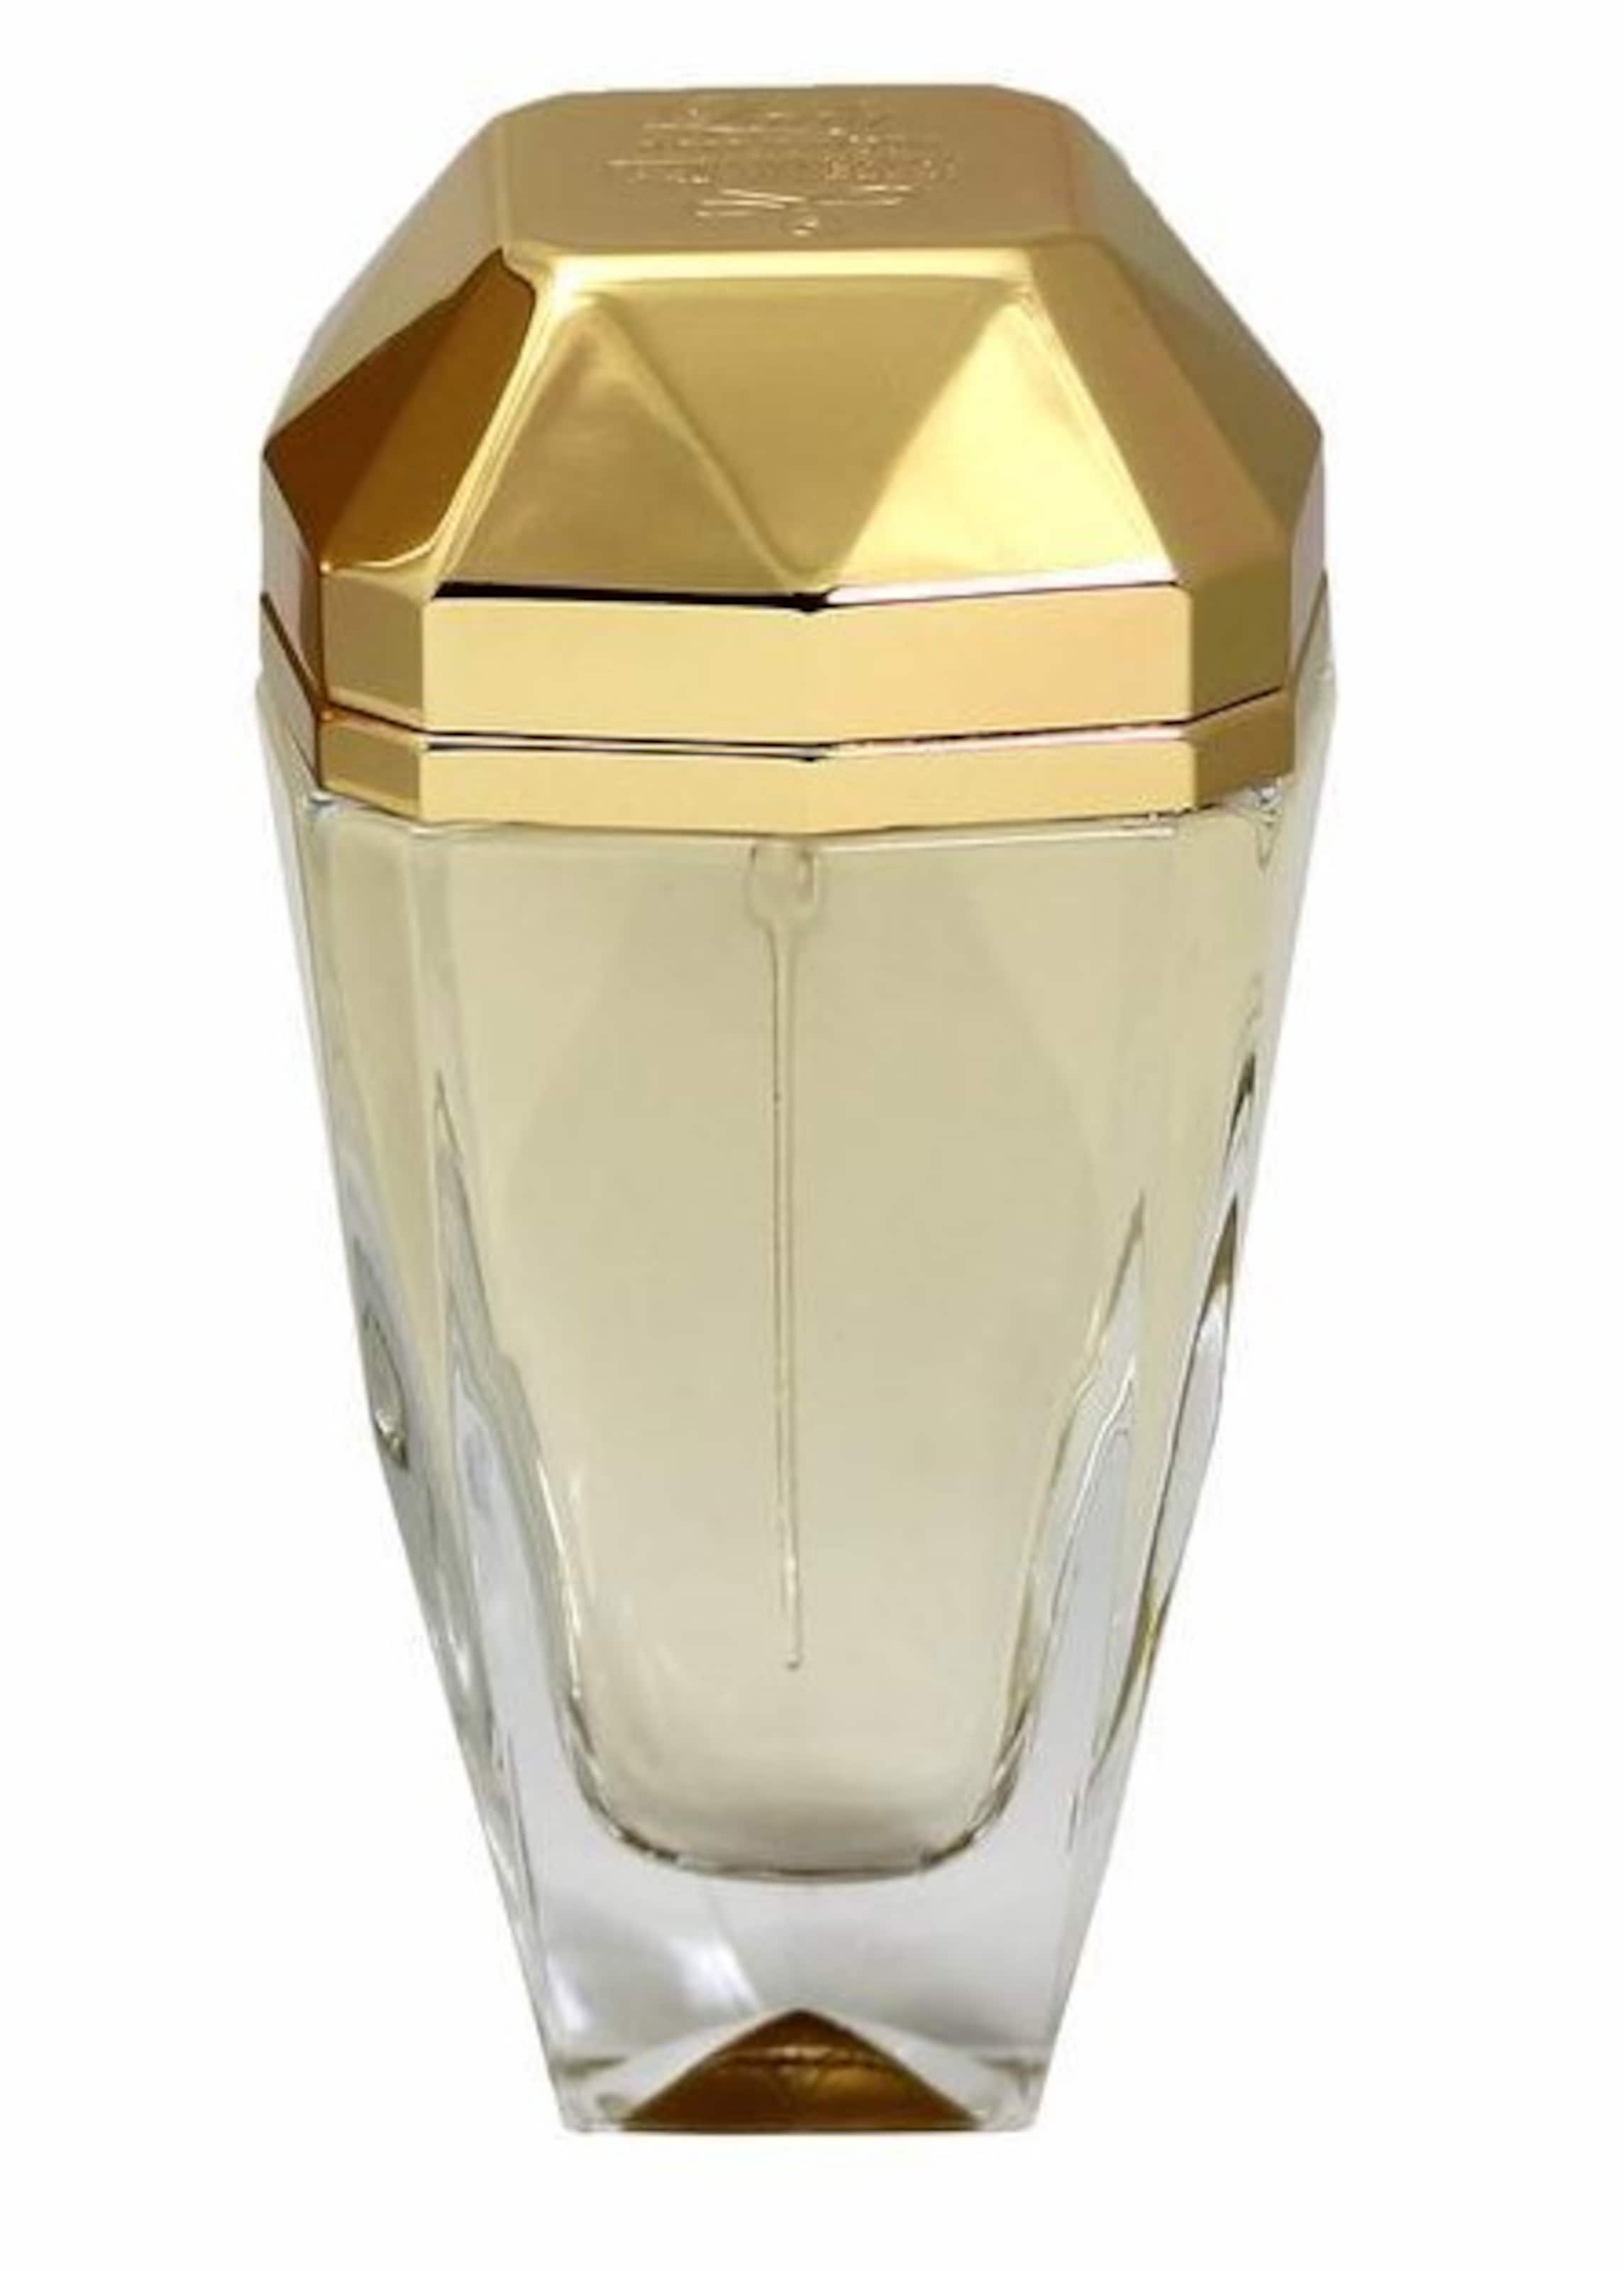 paco rabanne 'Lady Million Eau My Gold', 80ml Eau de Toilette